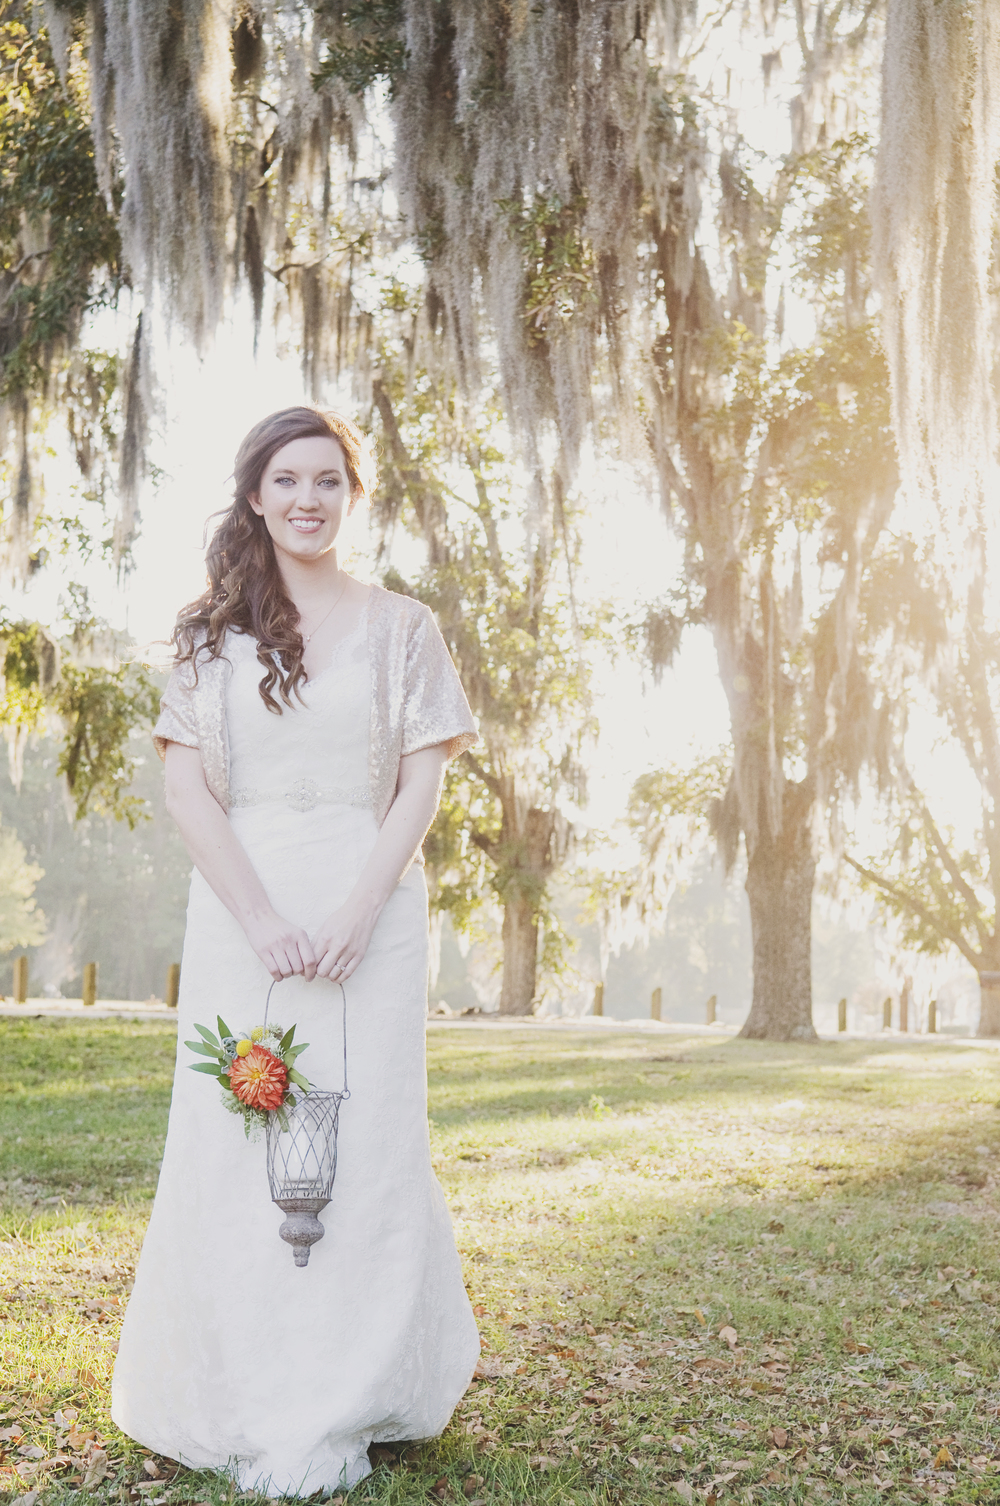 amber-and-david-ivory-and-beau-bridal-boutique-lytle-foto-savannah-wedding-dresses-savannah-wedding-planner-savannah-event-designer-savannah-weddings-wormsloe-wedding-cohens-retreat-wedding-indie-wedding-handmade-wedding-historic-12.jpg